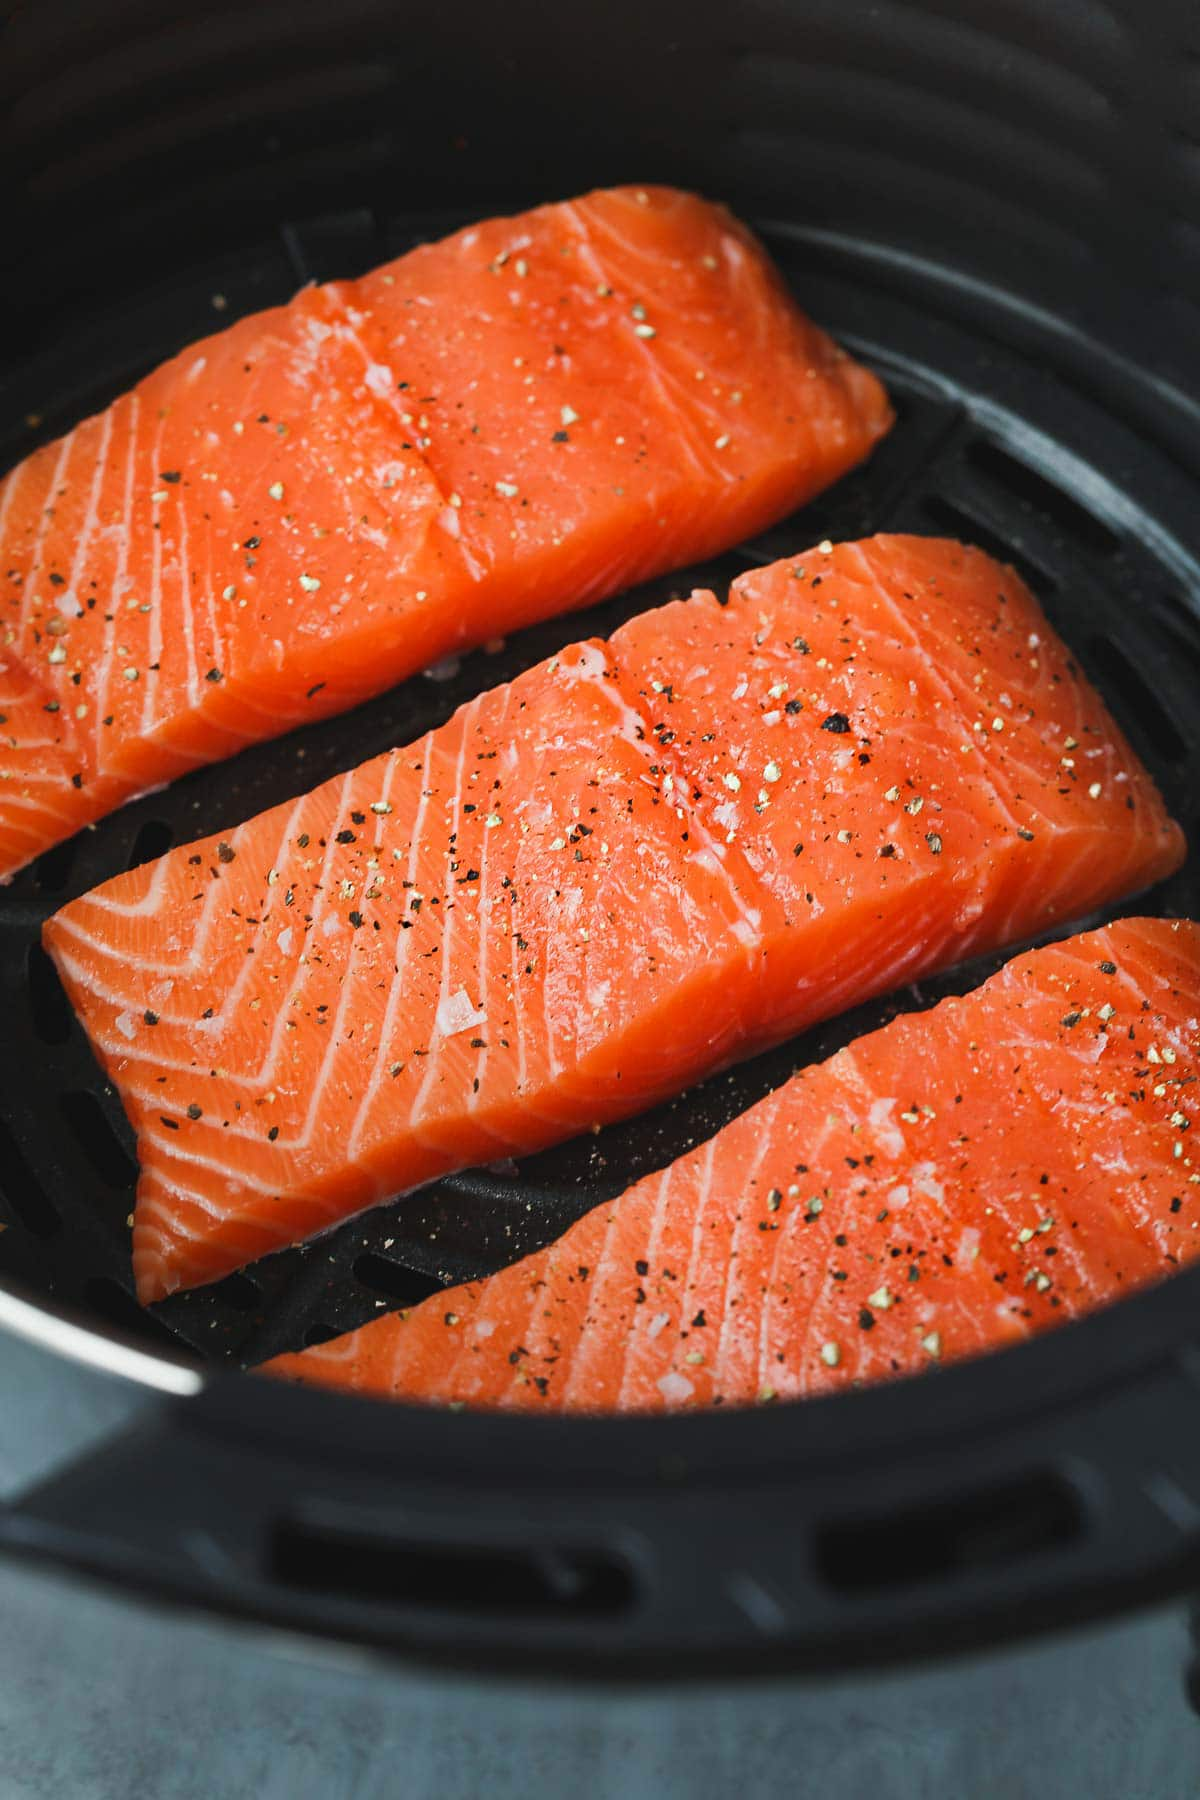 Raw air fryer salmon fillets seasoned and placed in the air fryer basket.